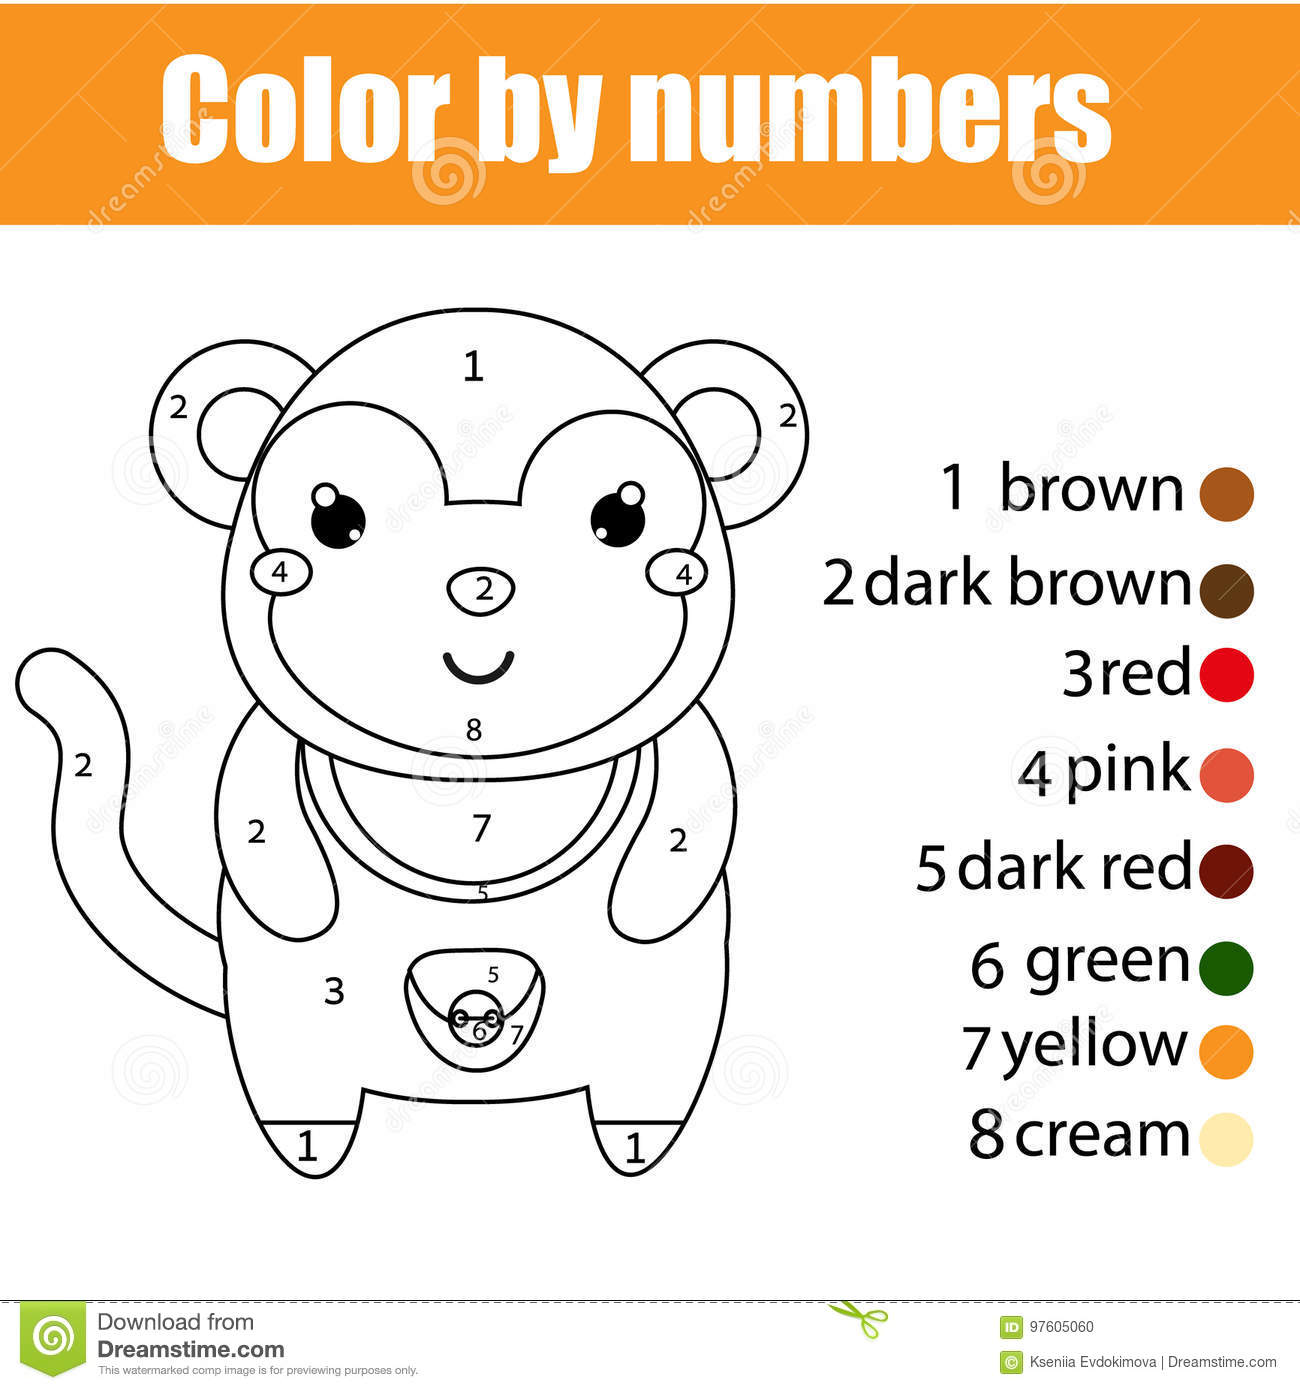 Coloring Page With Monkey Color By Numbers Educational Children Game Drawing Kids Activity Stock Vector Illustration Of Hobby Education 97605060